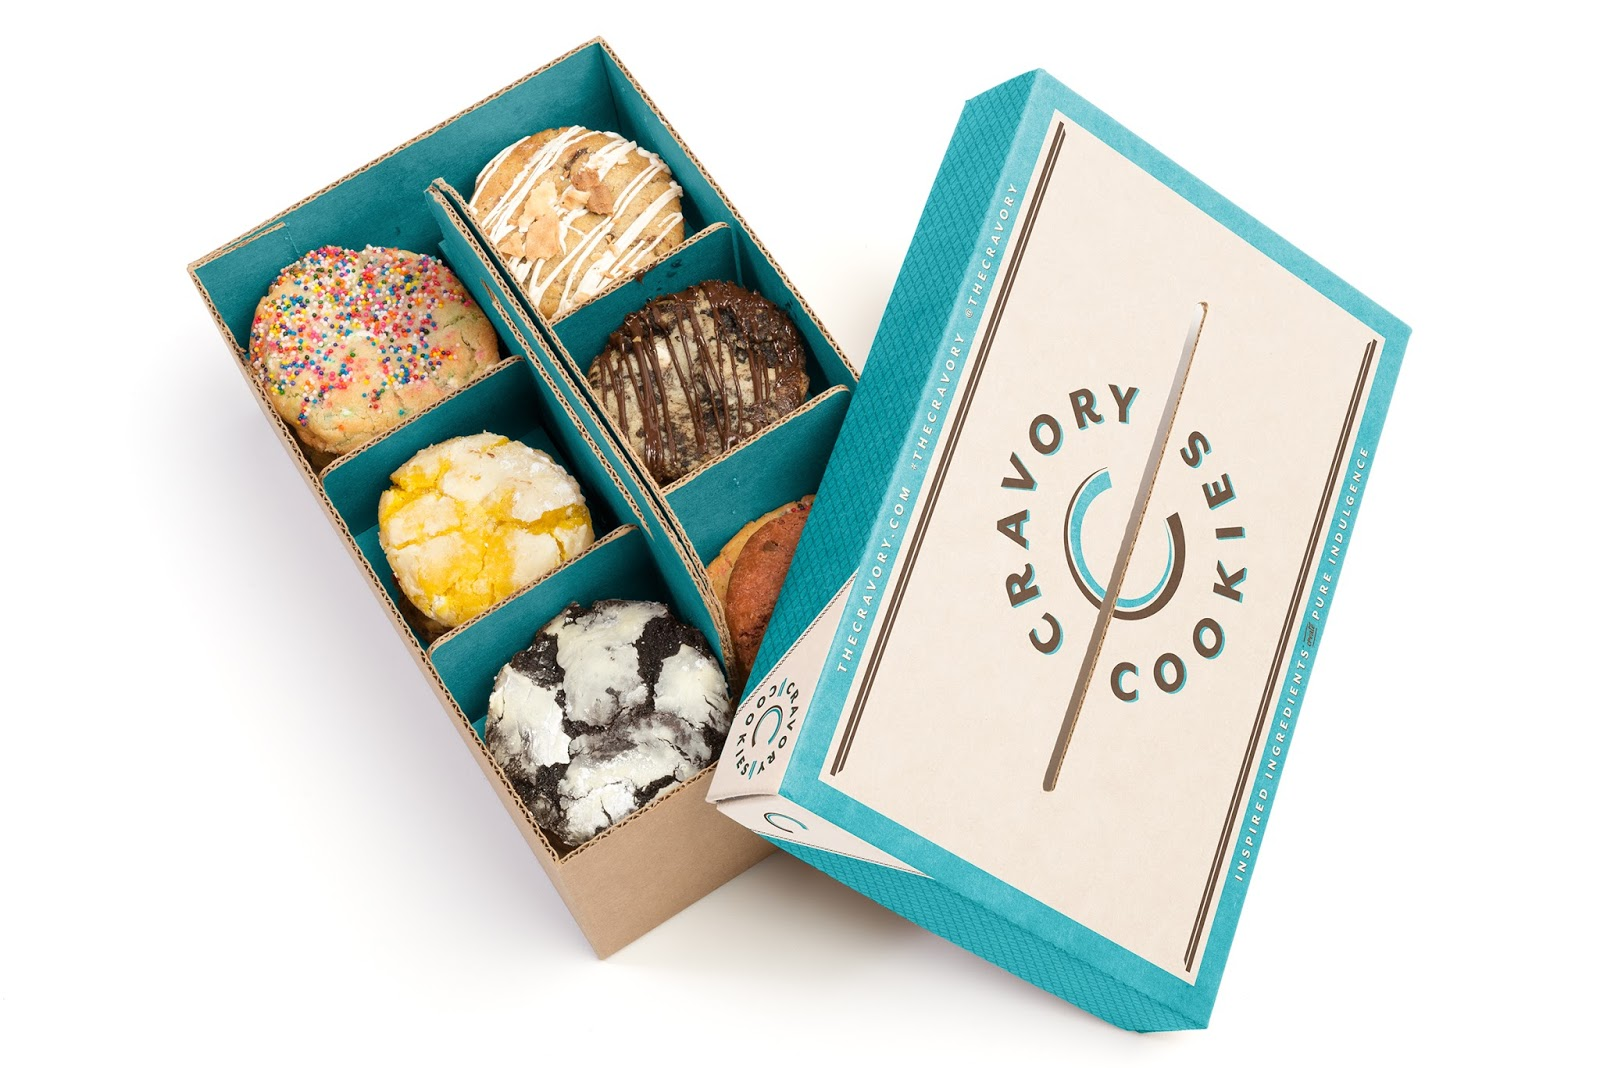 Cravory Cookies Concept On Packaging Of The World